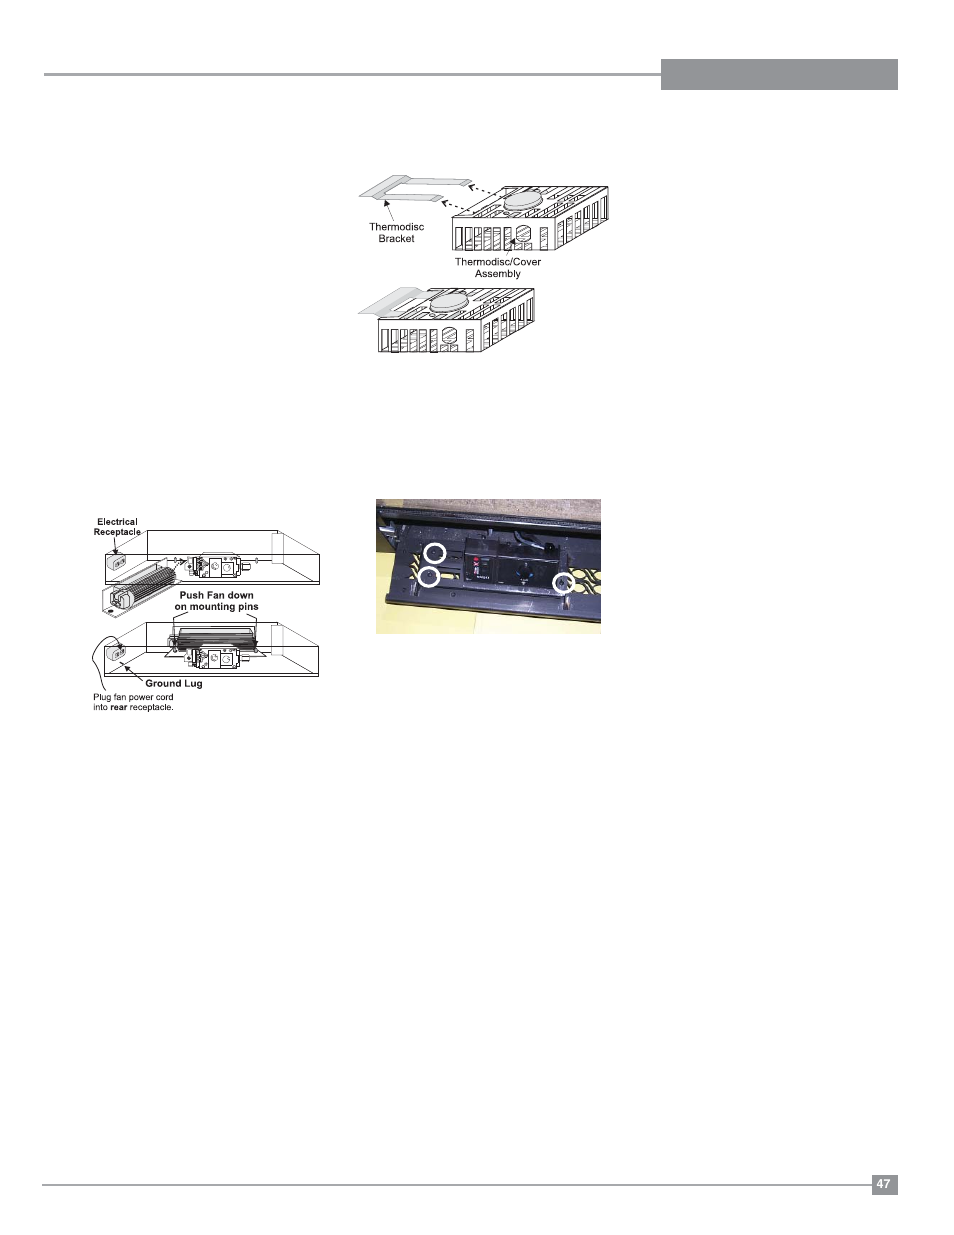 Maintenance Fan Regency Excalibur P90 Medium Gas Wire Diagram Fireplace User Manual Page 47